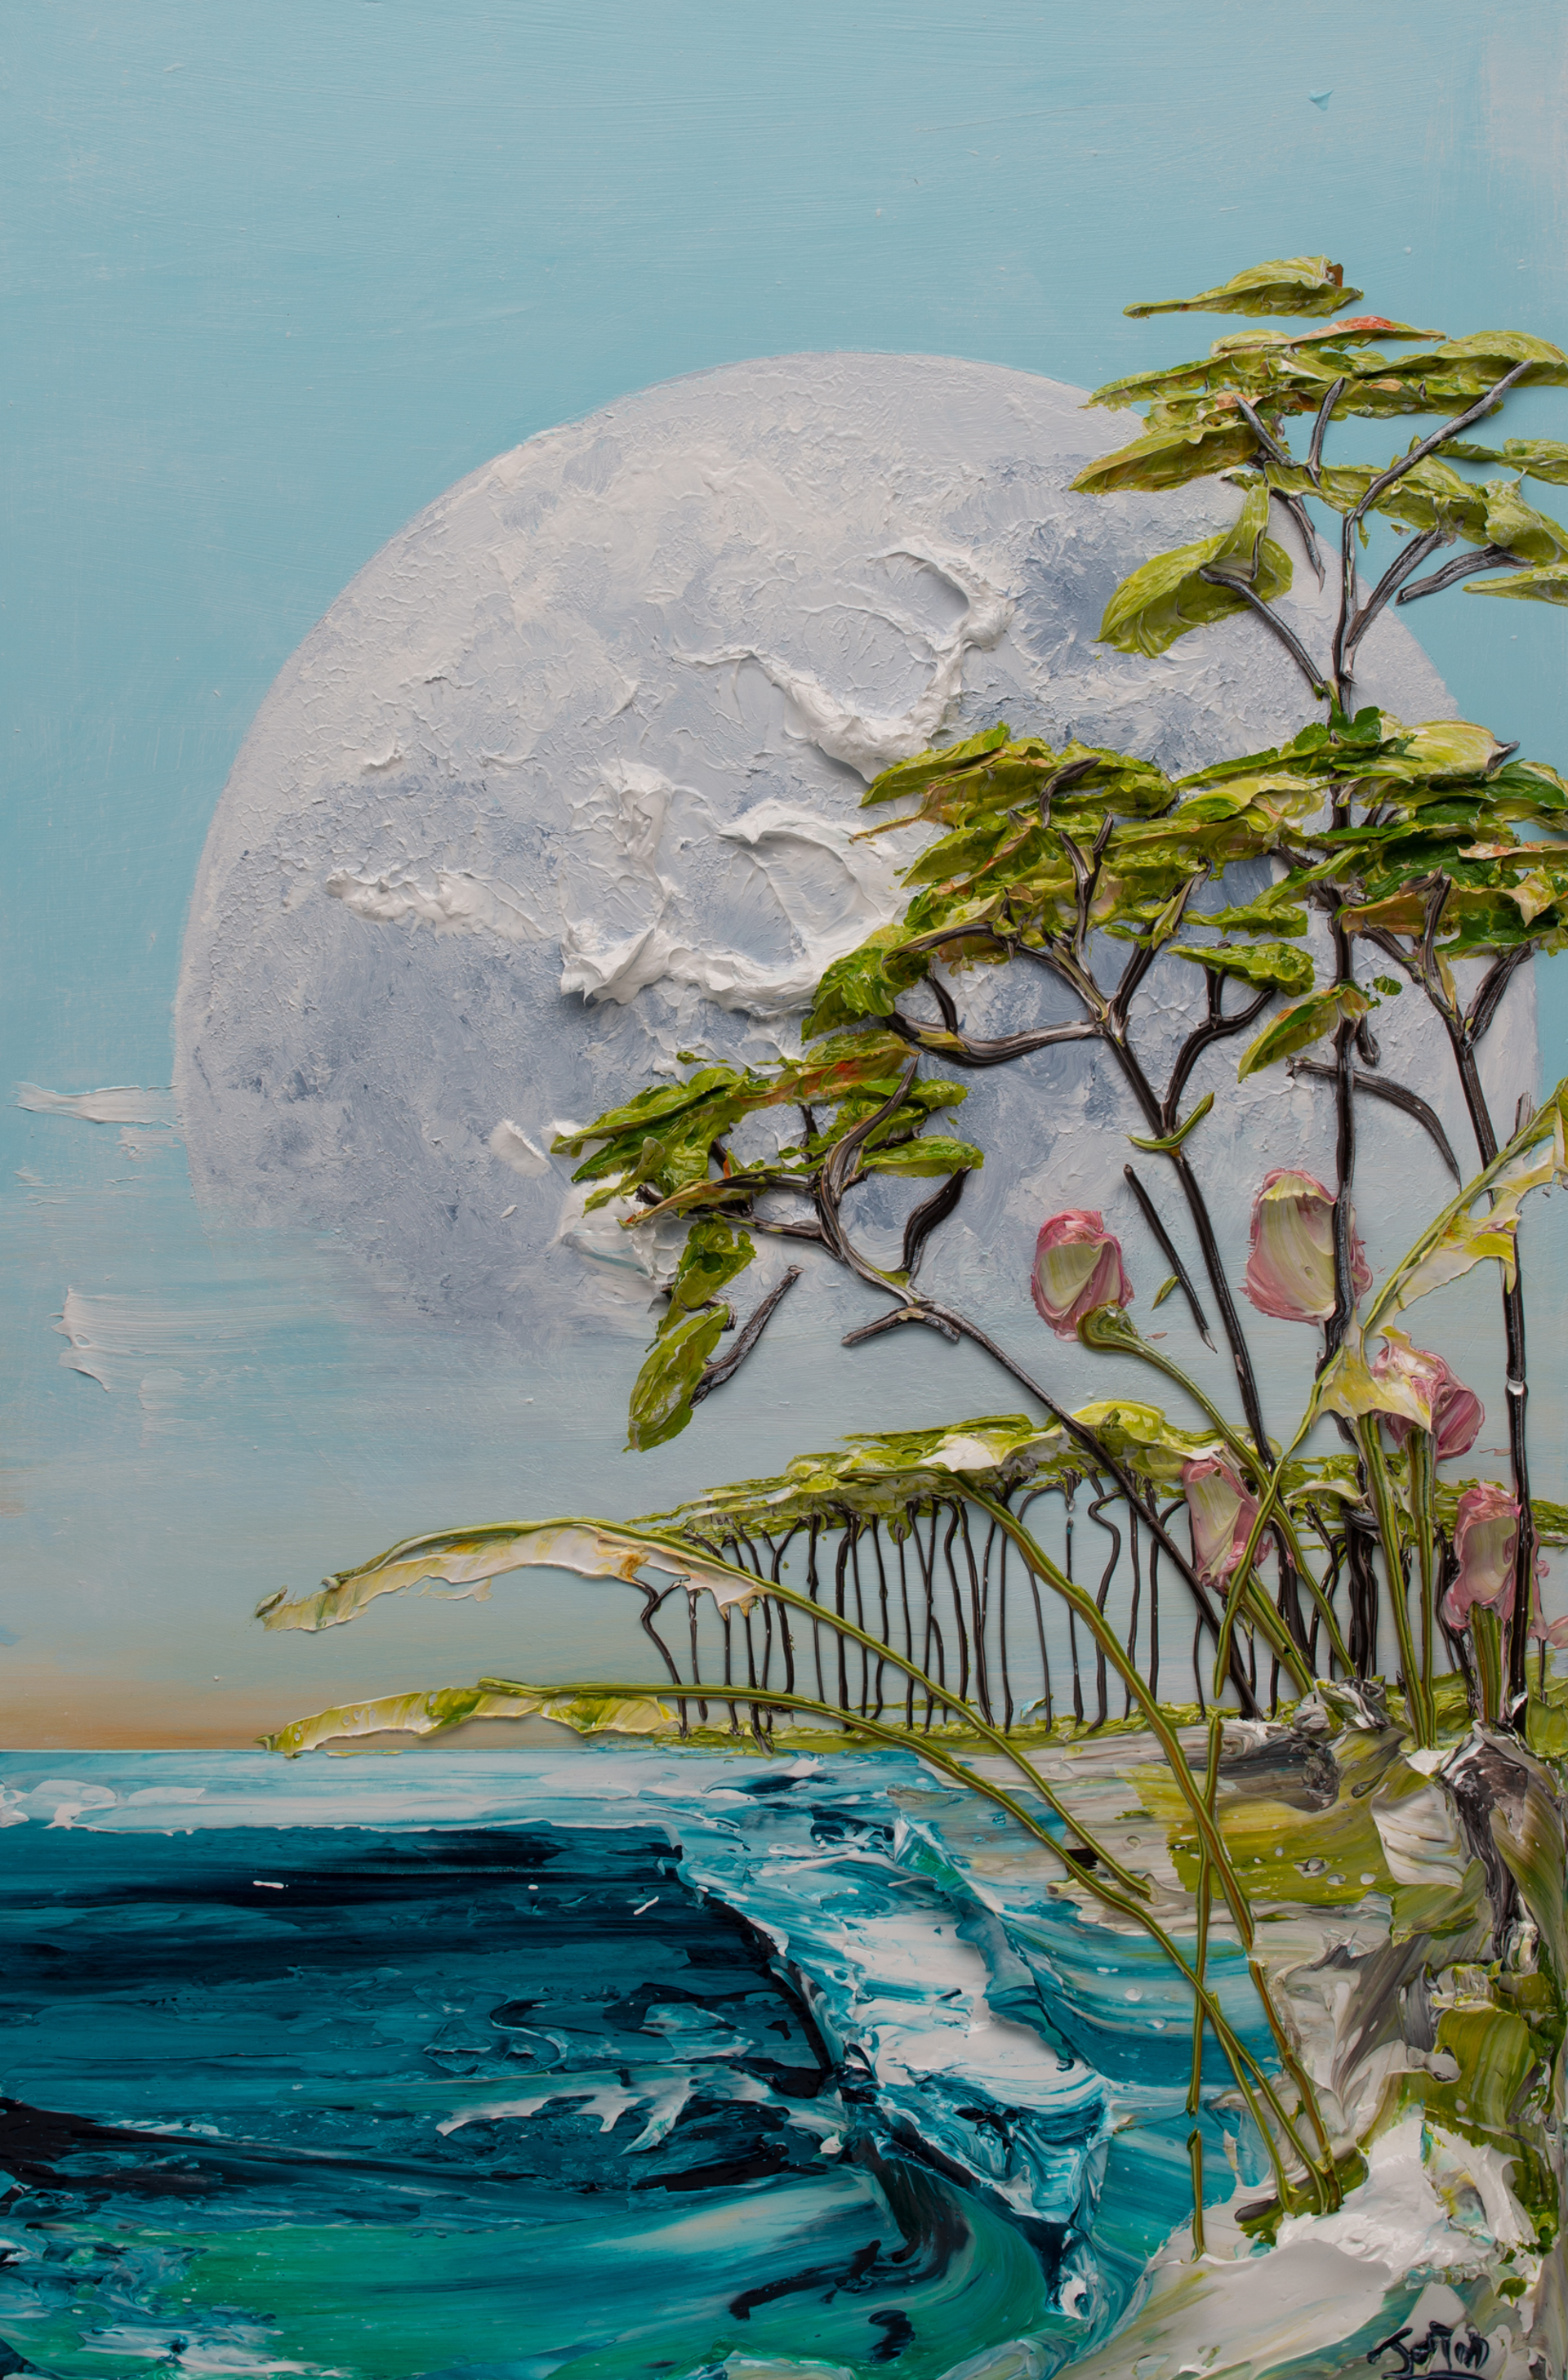 MOONSCAPE-MS-24X36-2019-238 by JUSTIN GAFFREY